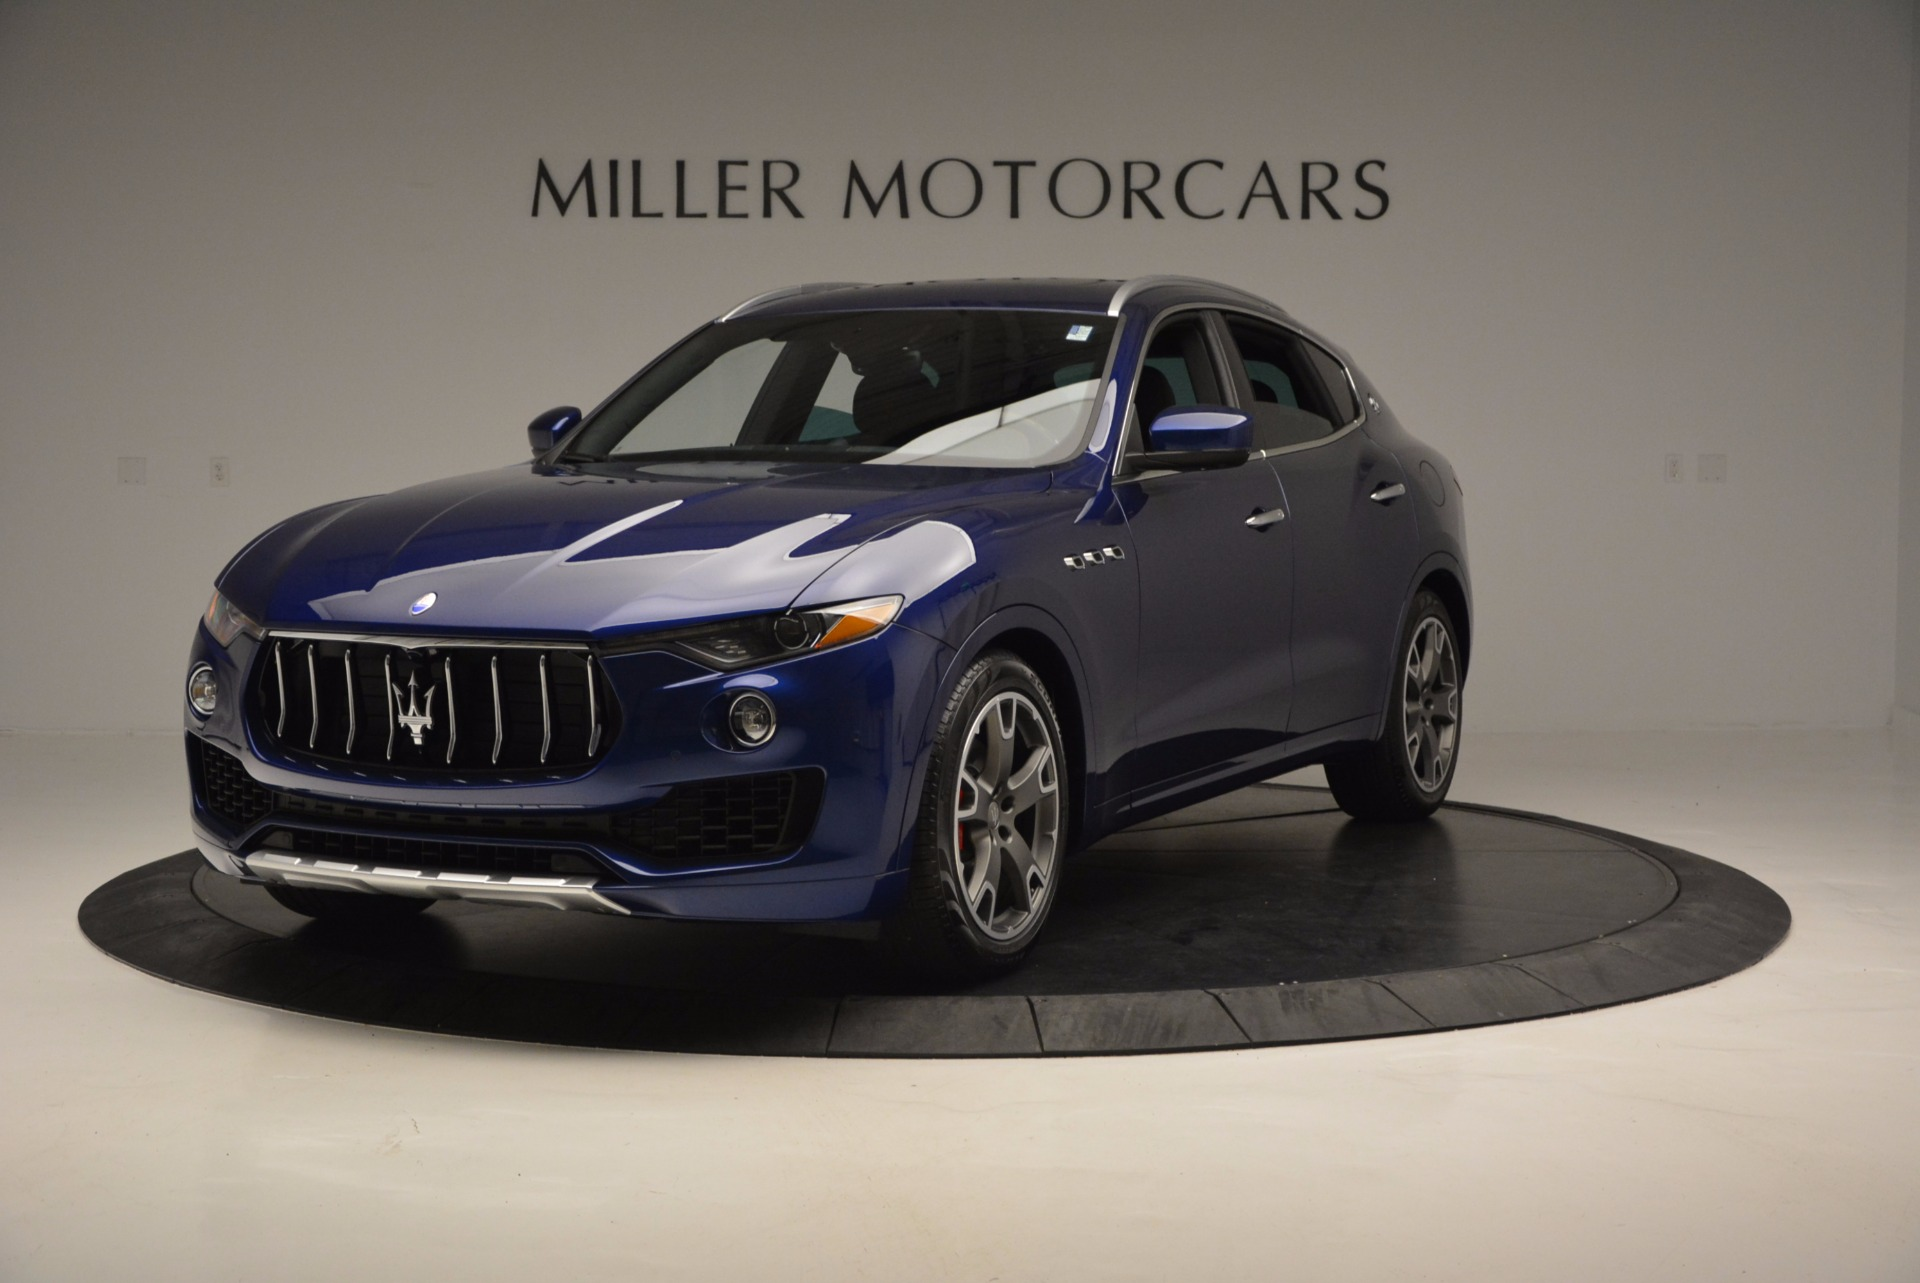 New 2017 Maserati Levante S for sale Sold at Bentley Greenwich in Greenwich CT 06830 1